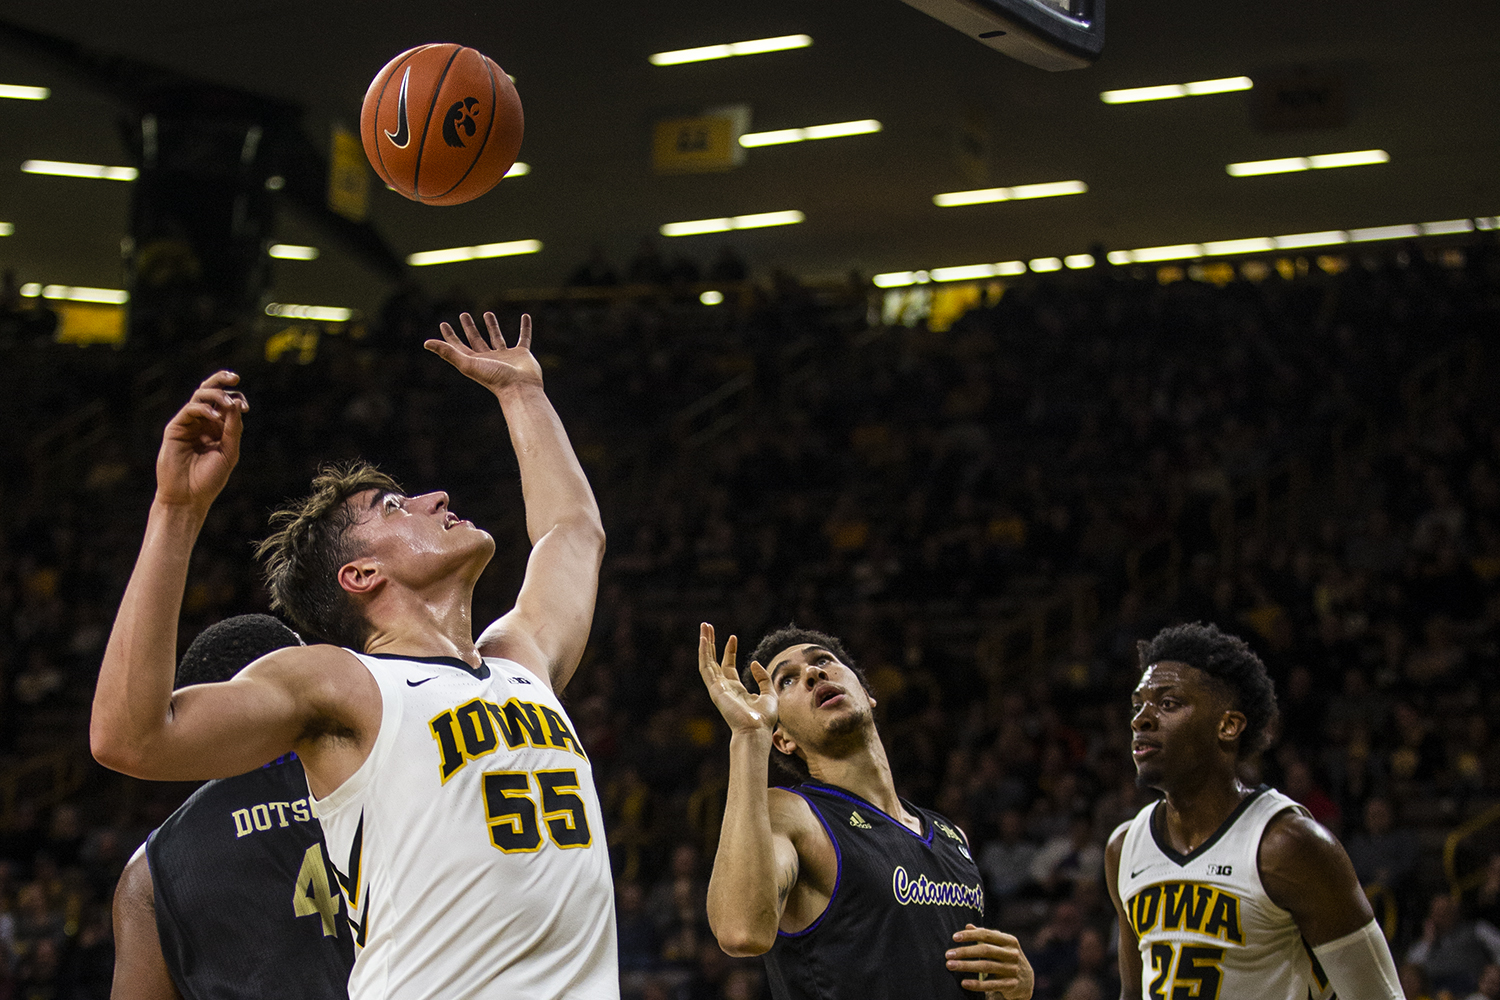 Iowa forward Luka Garza jumps for a rebound during the men's basketball game against Western Carolina at Carver-Hawkeye Arena on Tuesday, December 18, 2018. The Hawkeyes defeated the Catamounts 78-60.